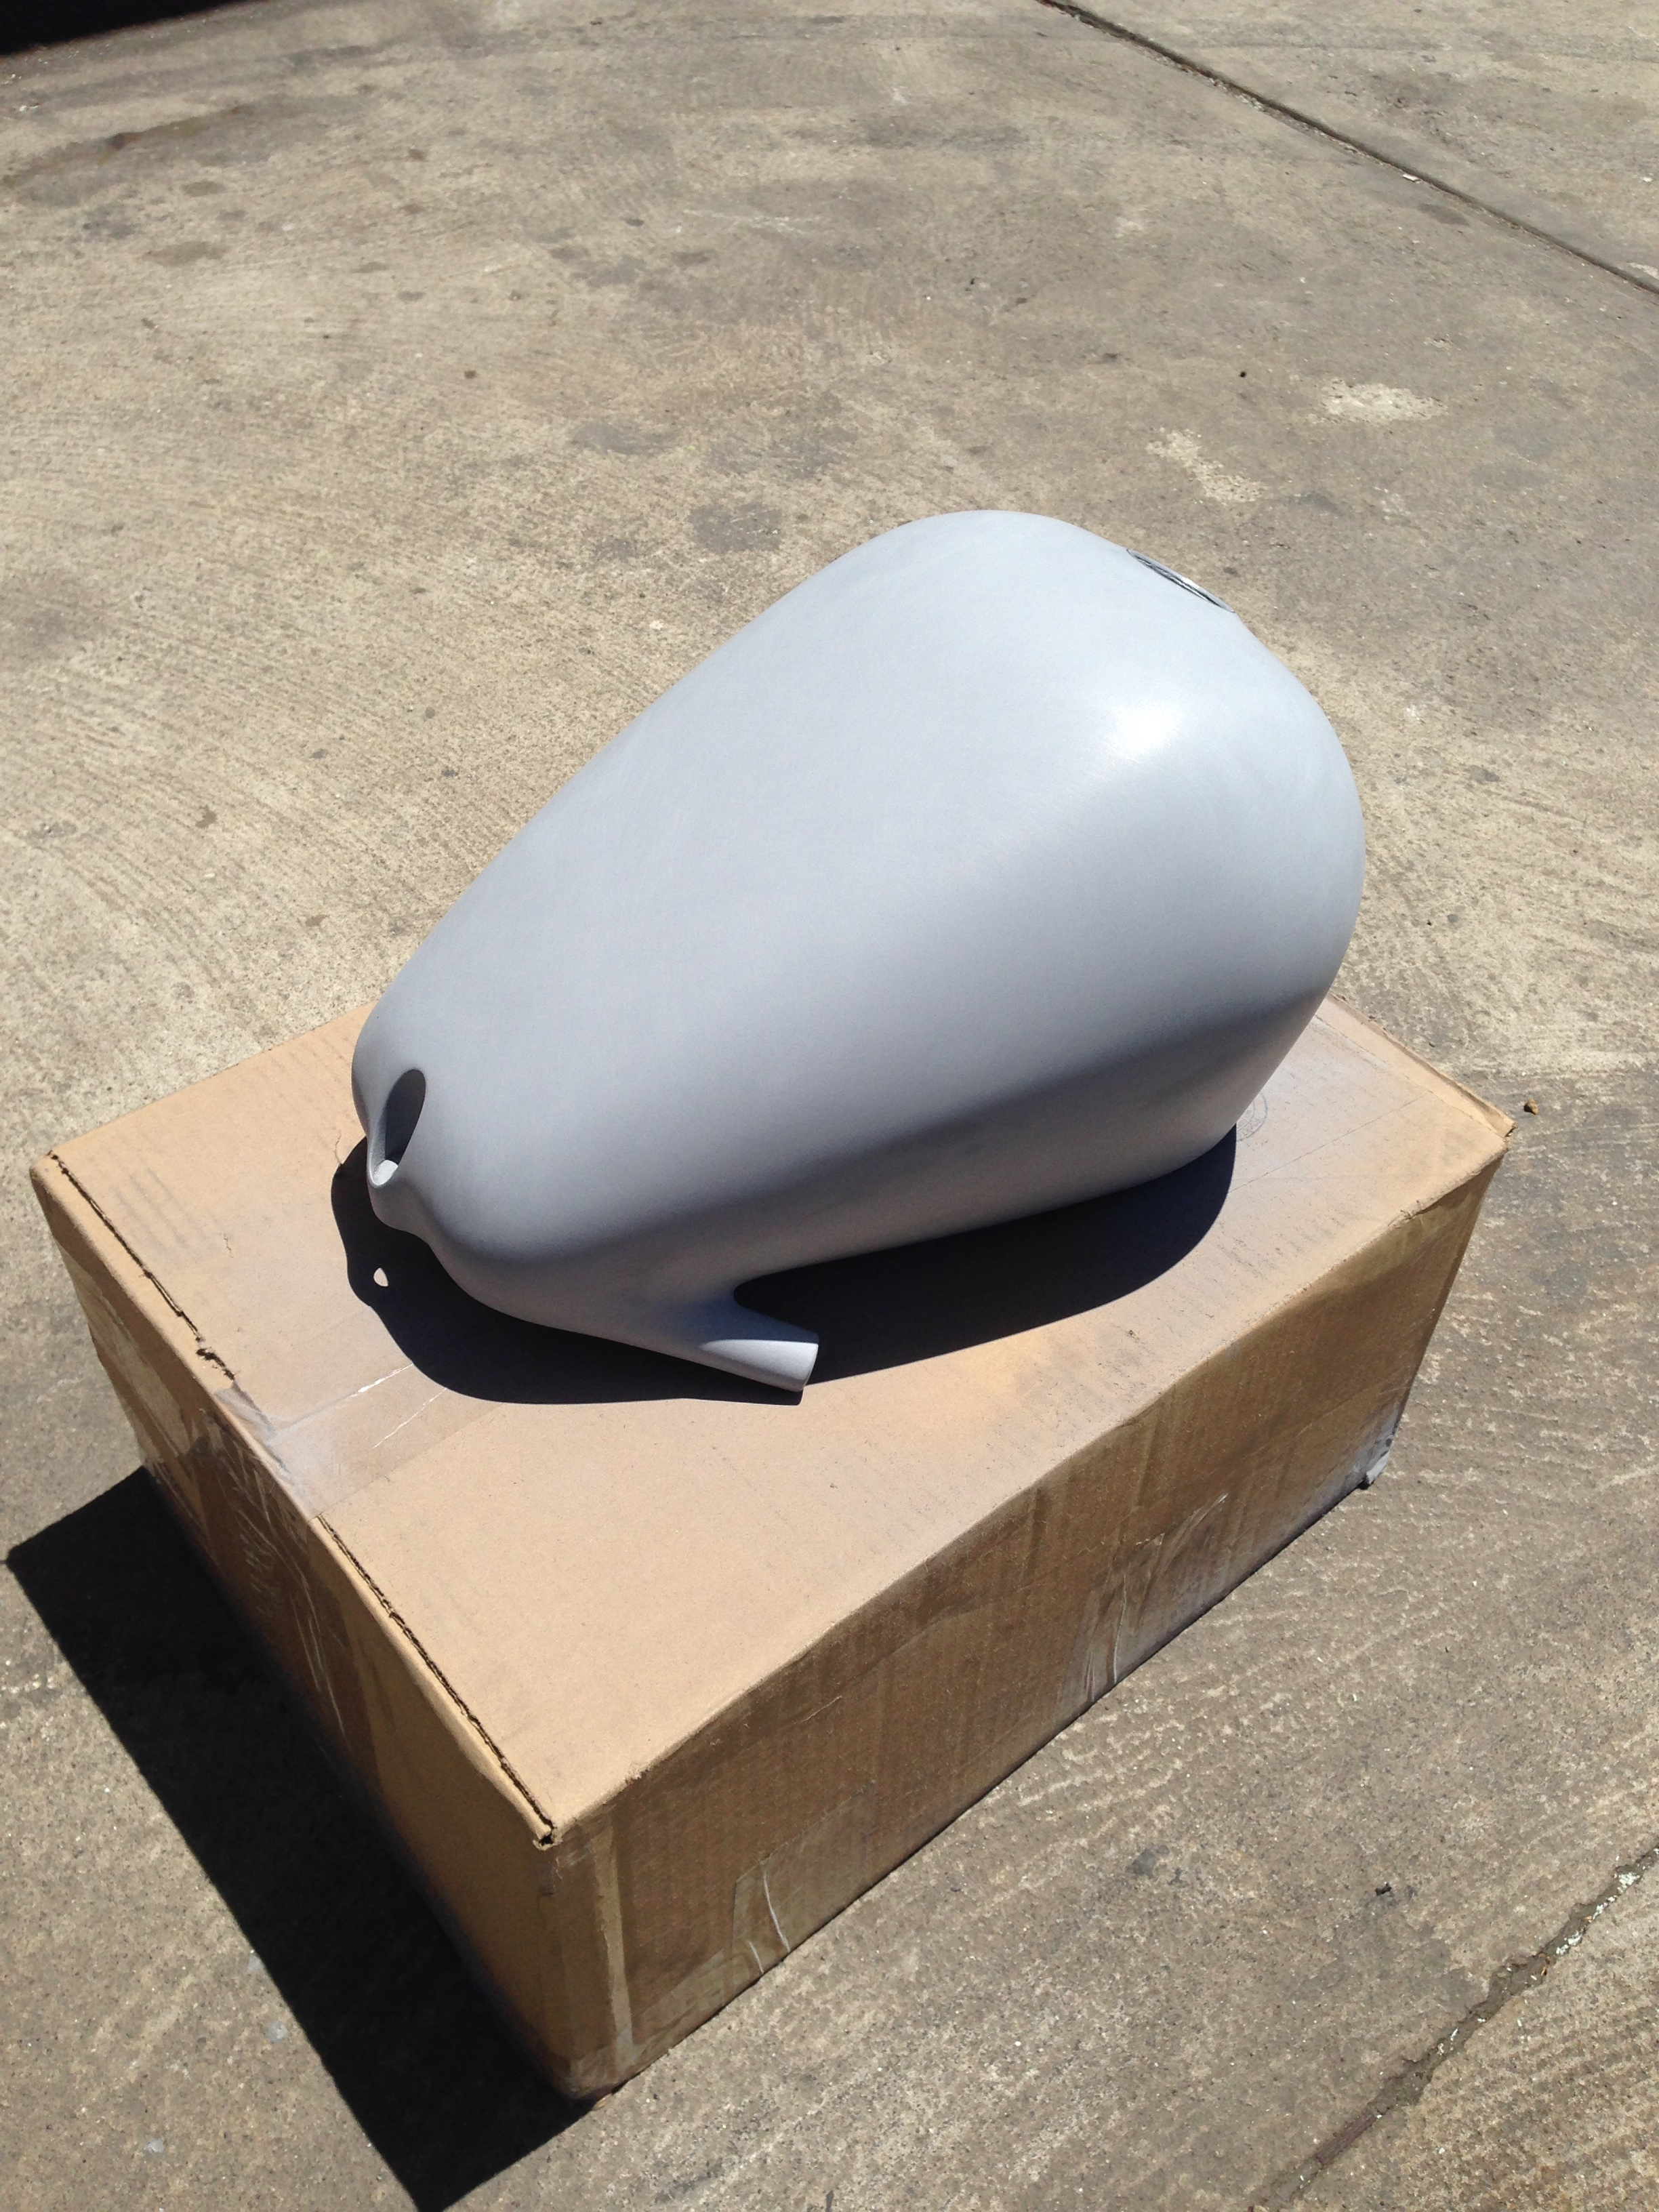 iron triangle gas tank in primer.jpeg